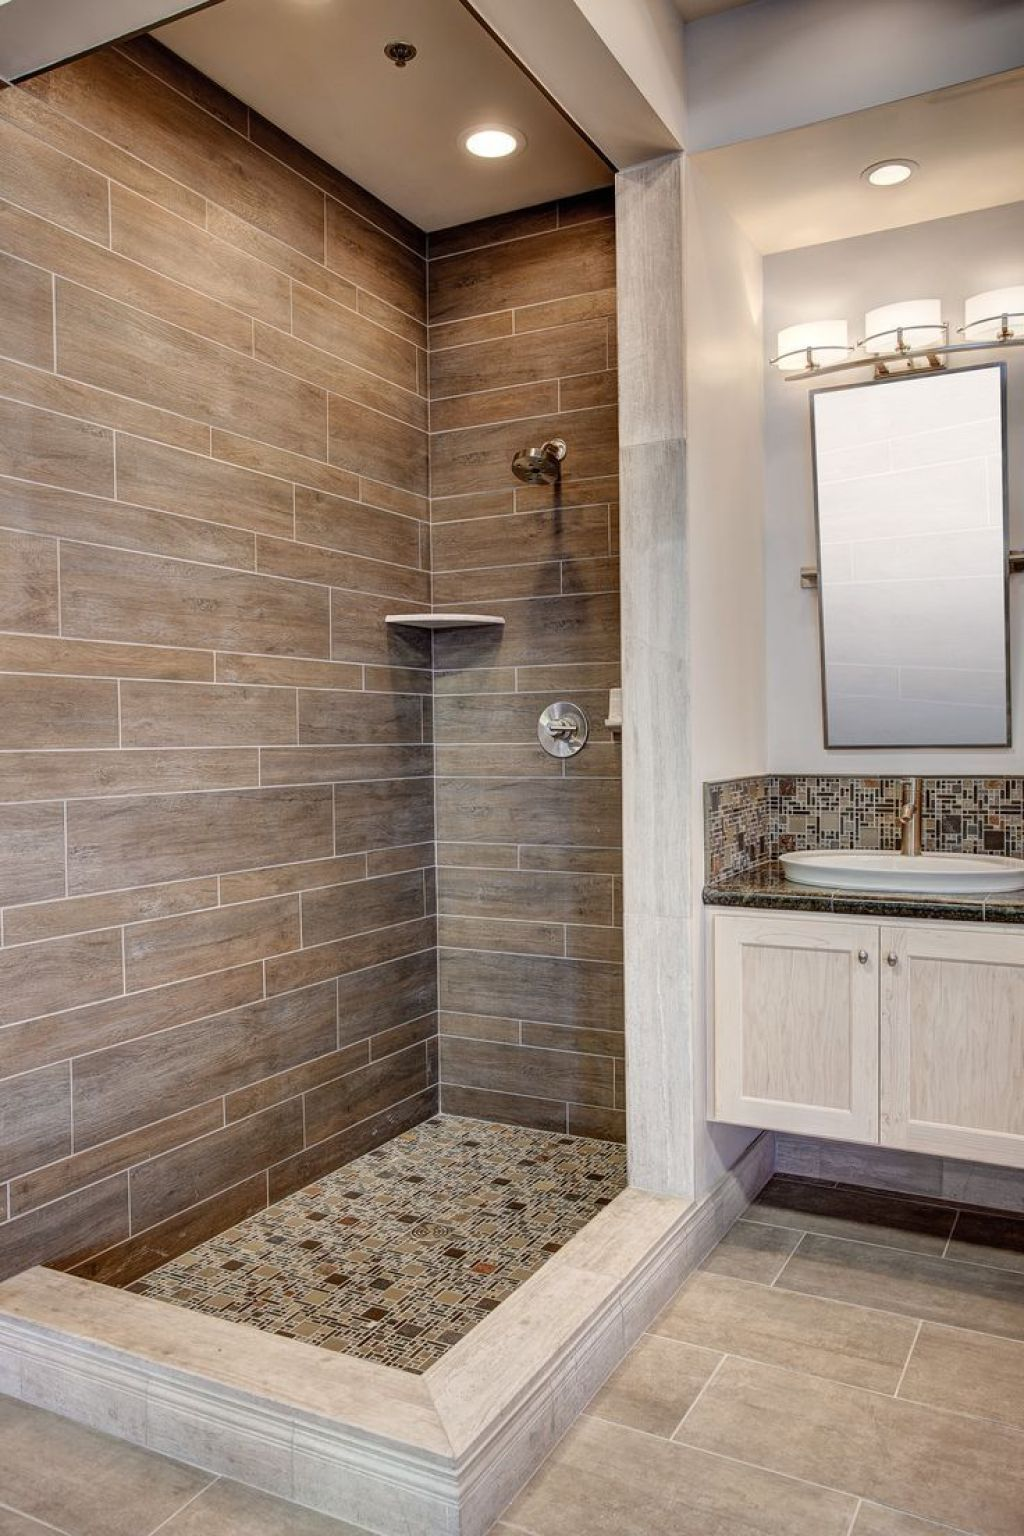 Instructions To Retile A Bathroom Wall A Relaxing Space For Your